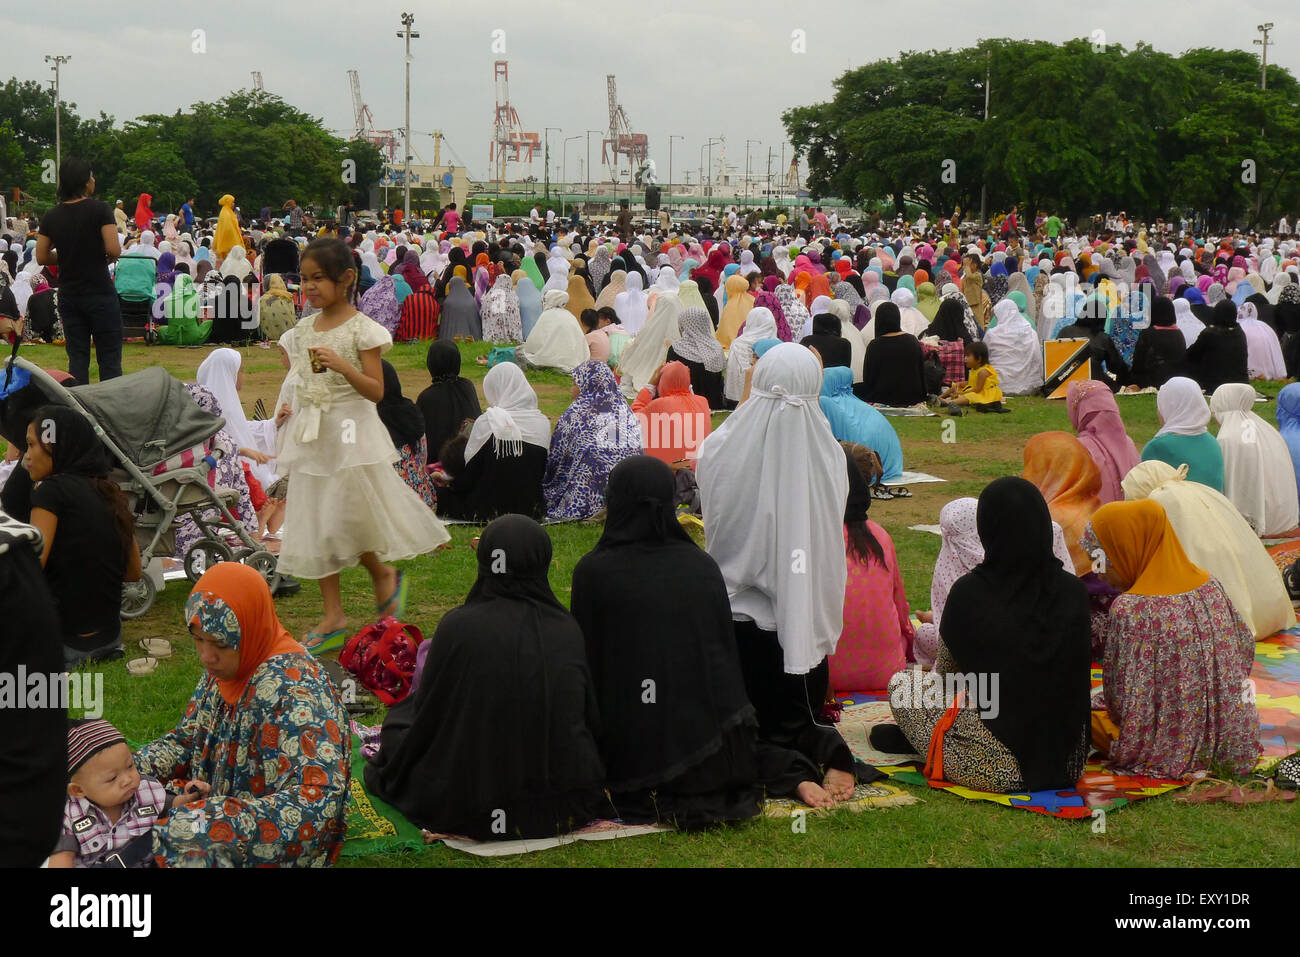 Manila, Philippines. 17th July, 2015. Hundreds of Muslim families gathered at grass lawn yard listening to their - Stock Image